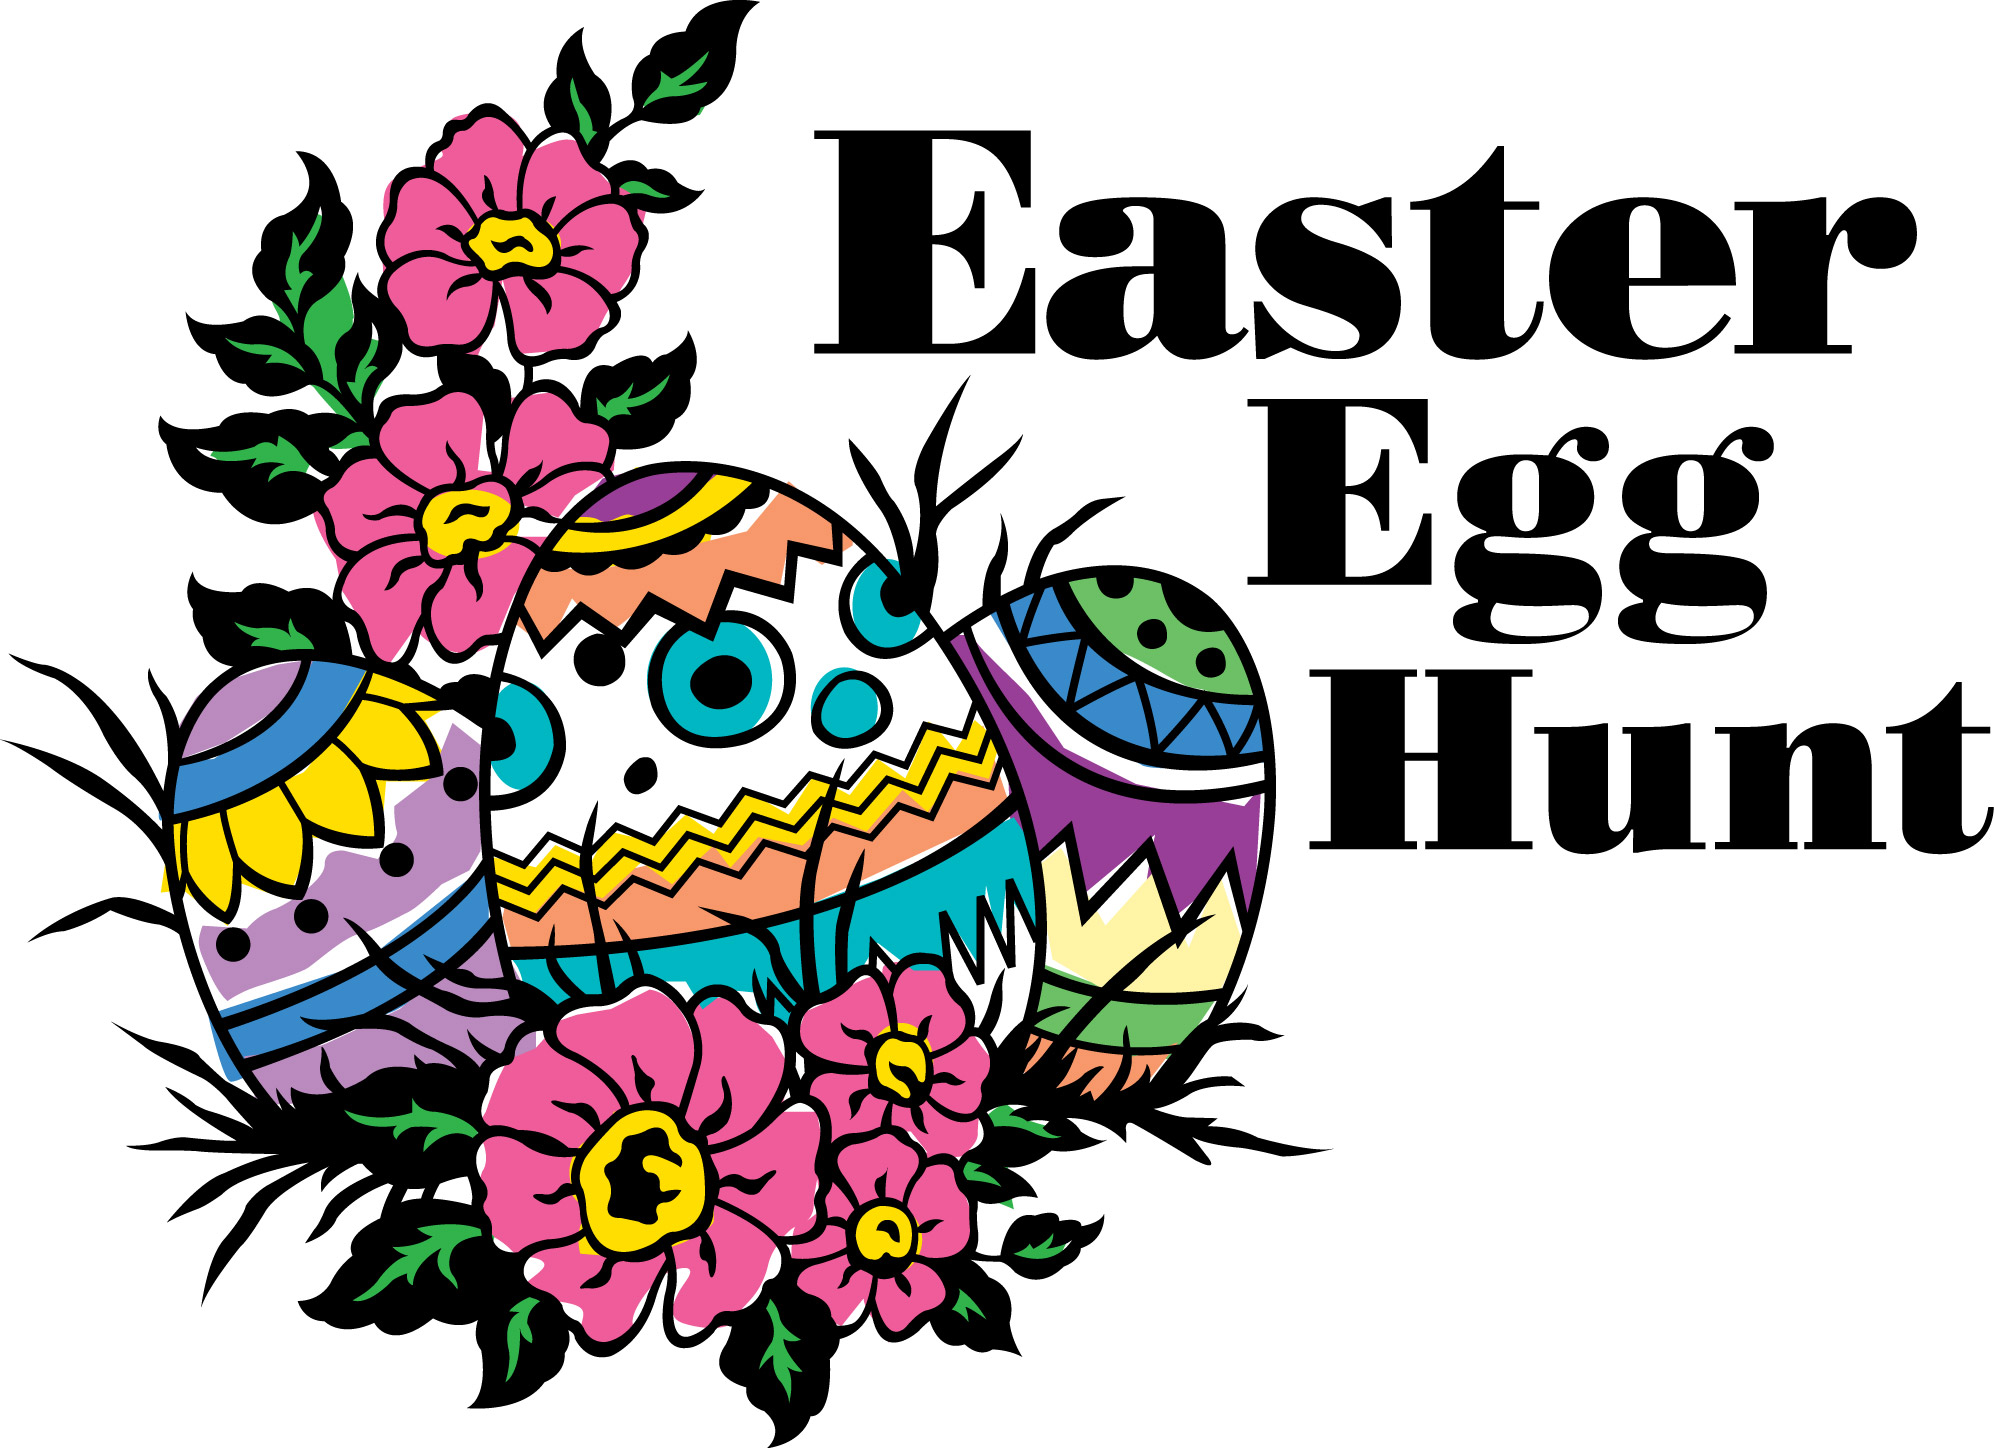 1994x1448 Free Easter Egg Hunt Clipart Merry Christmas And Happy New Year 2018